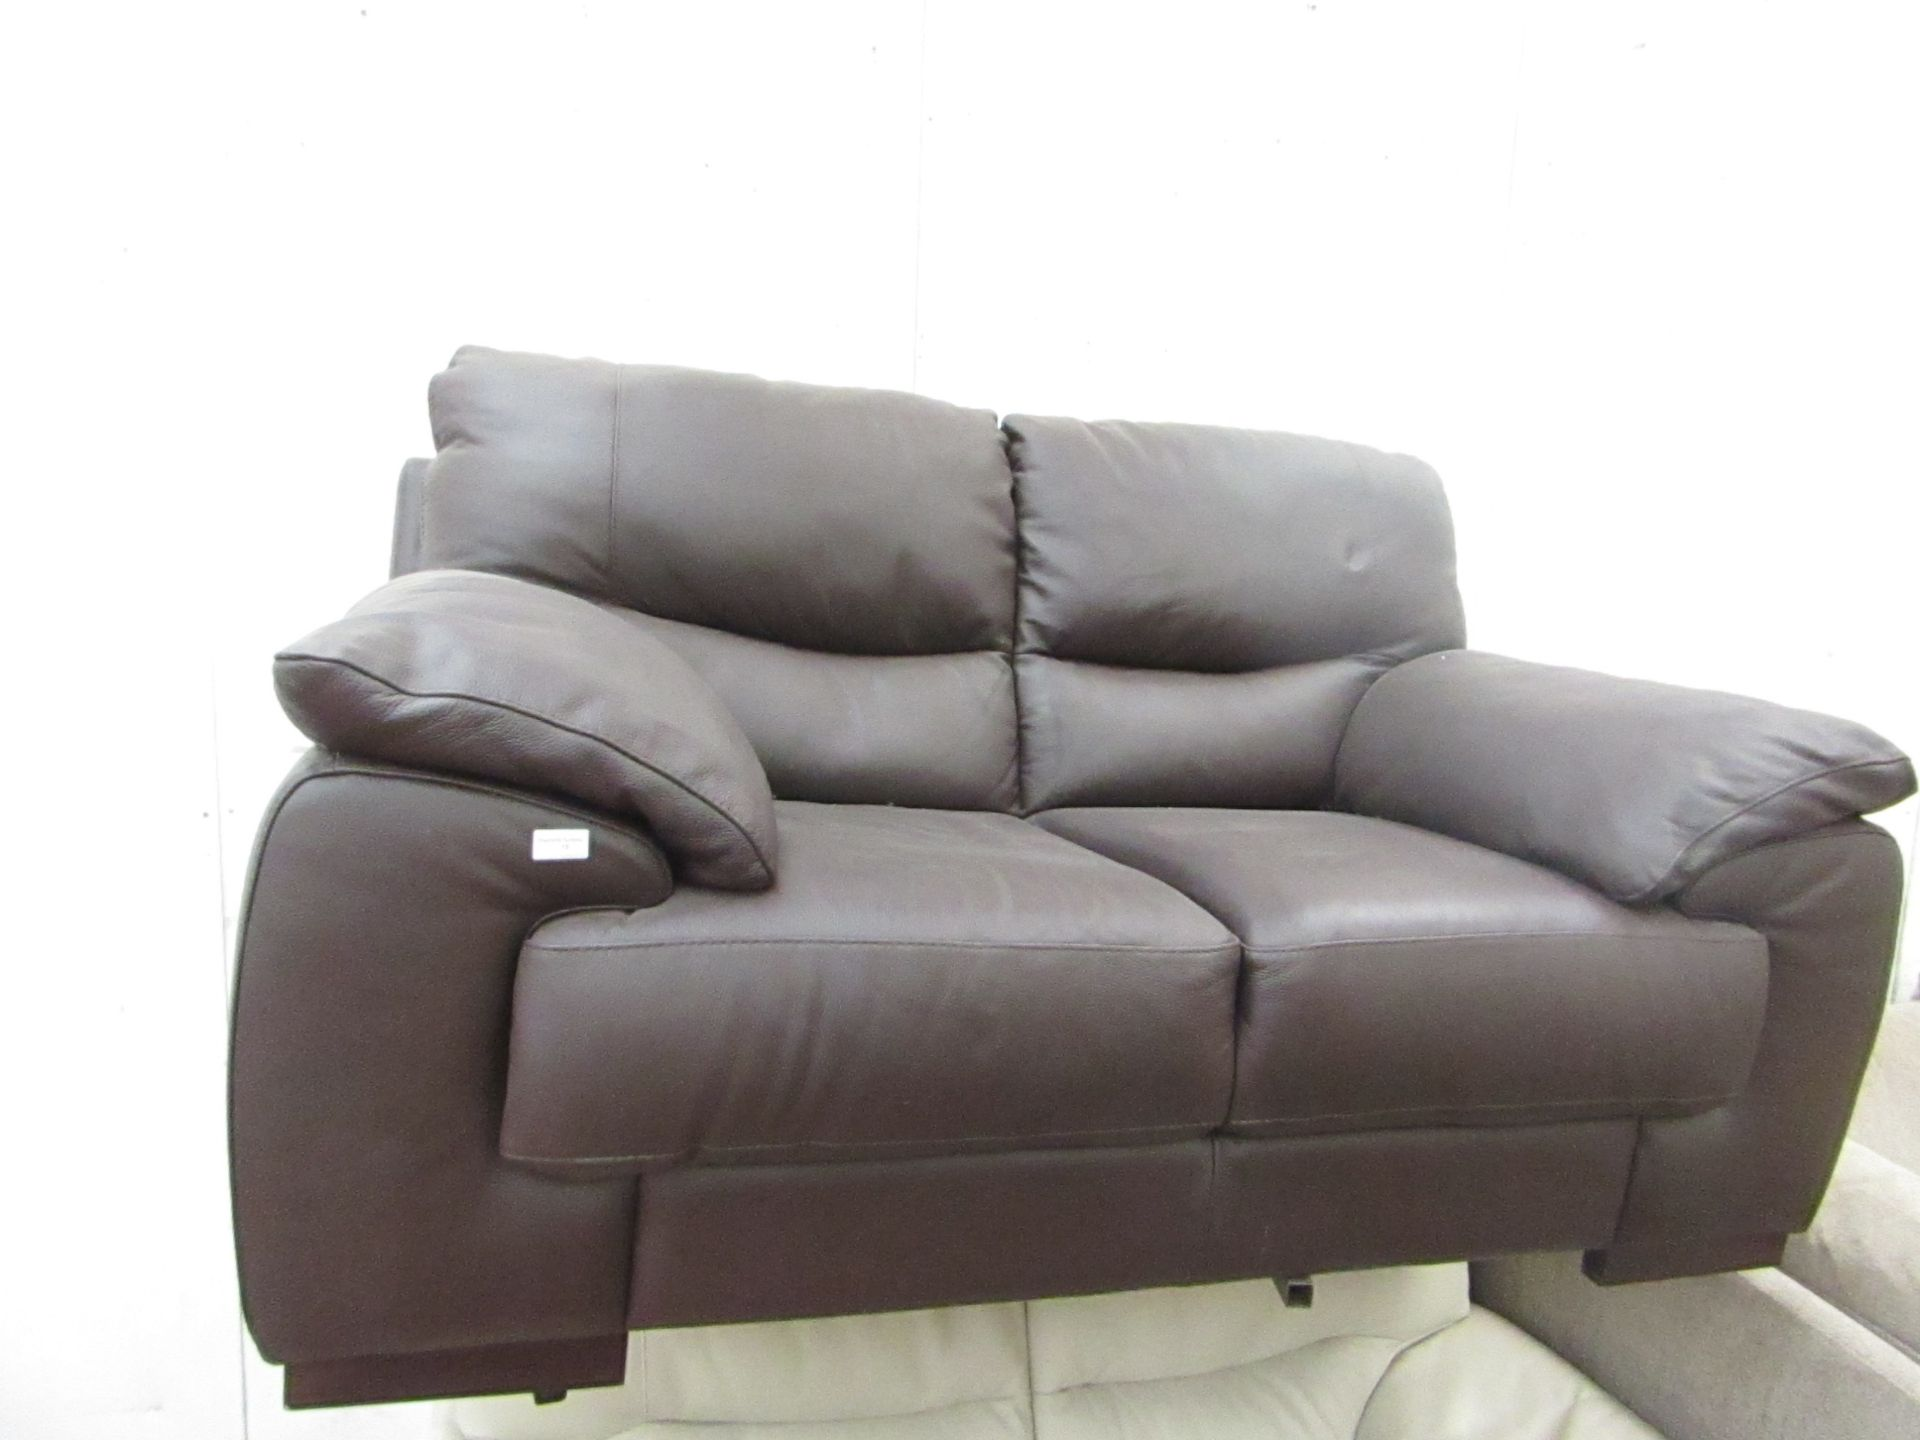 Lot 15 - 2 seater Brown Leather sofa.